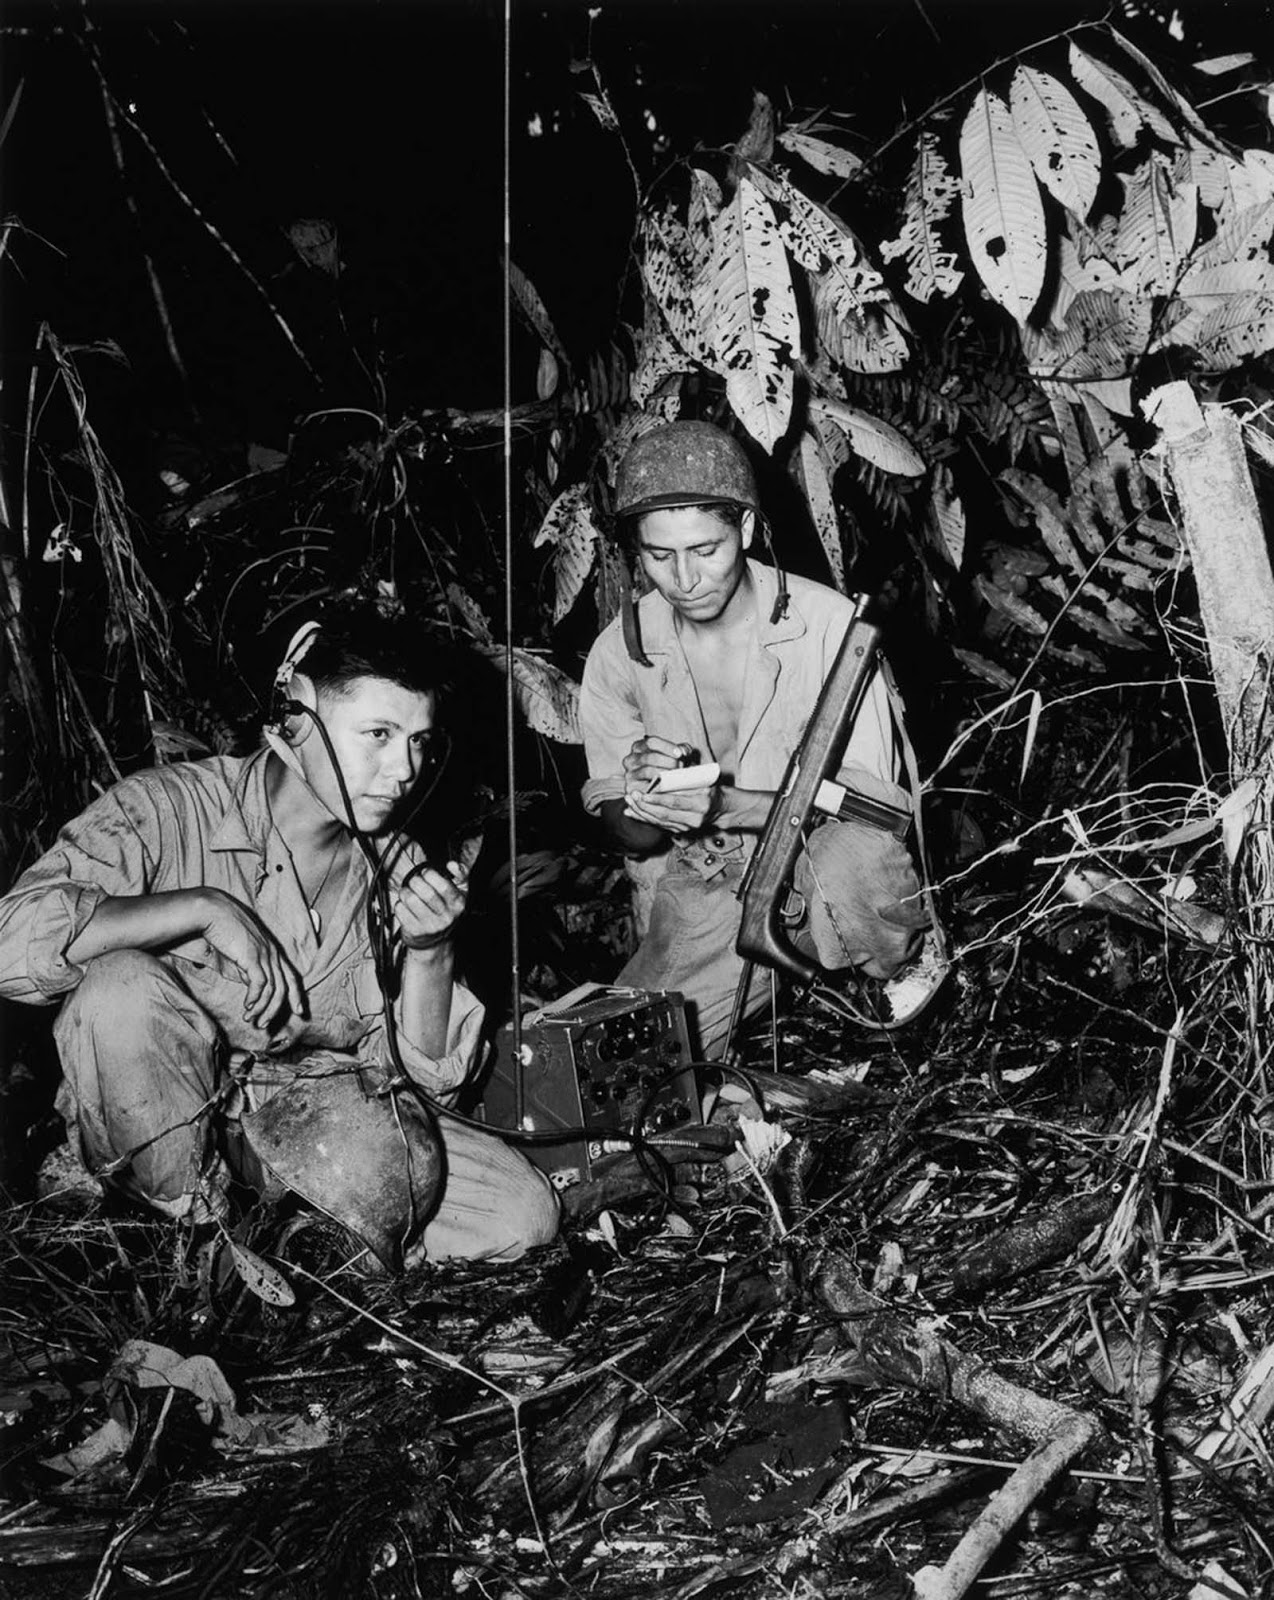 Navajo code talkers Cpl. Henry Bake, Jr. and PFC George H. Kirk transmit messages during combat on Bougainville. 1943.